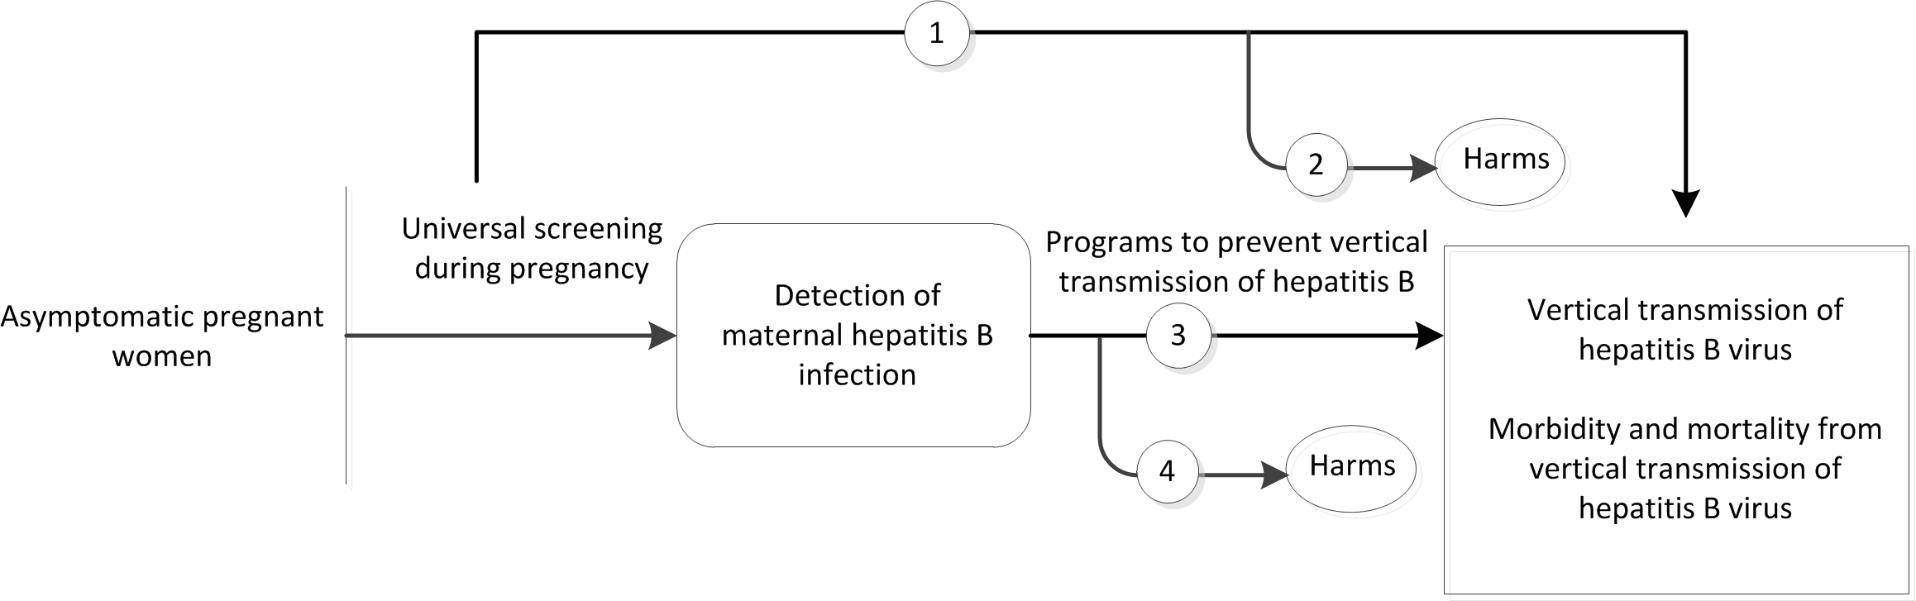 Figure 1 is the analytic framework that depicts the four Key Questions to be addressed in the systematic review. The figure illustrates how universal screening during pregnancy may result in improved health outcomes, including a reduction in the vertical transmission rates of hepatitis B as well as decreased morbidity and mortality (KQ1). The figure also depicts how programs to prevent the vertical transmission of hepatitis B may result in improved health outcomes, including a reduction in the vertical transmission rates of hepatitis B as well as decreased morbidity and mortality (KQ3). Further, the figure illustrates whether universal screening during pregnancy and programs to prevent the vertical transmission of hepatitis B infection are associated with any adverse events (KQ2, KQ4).